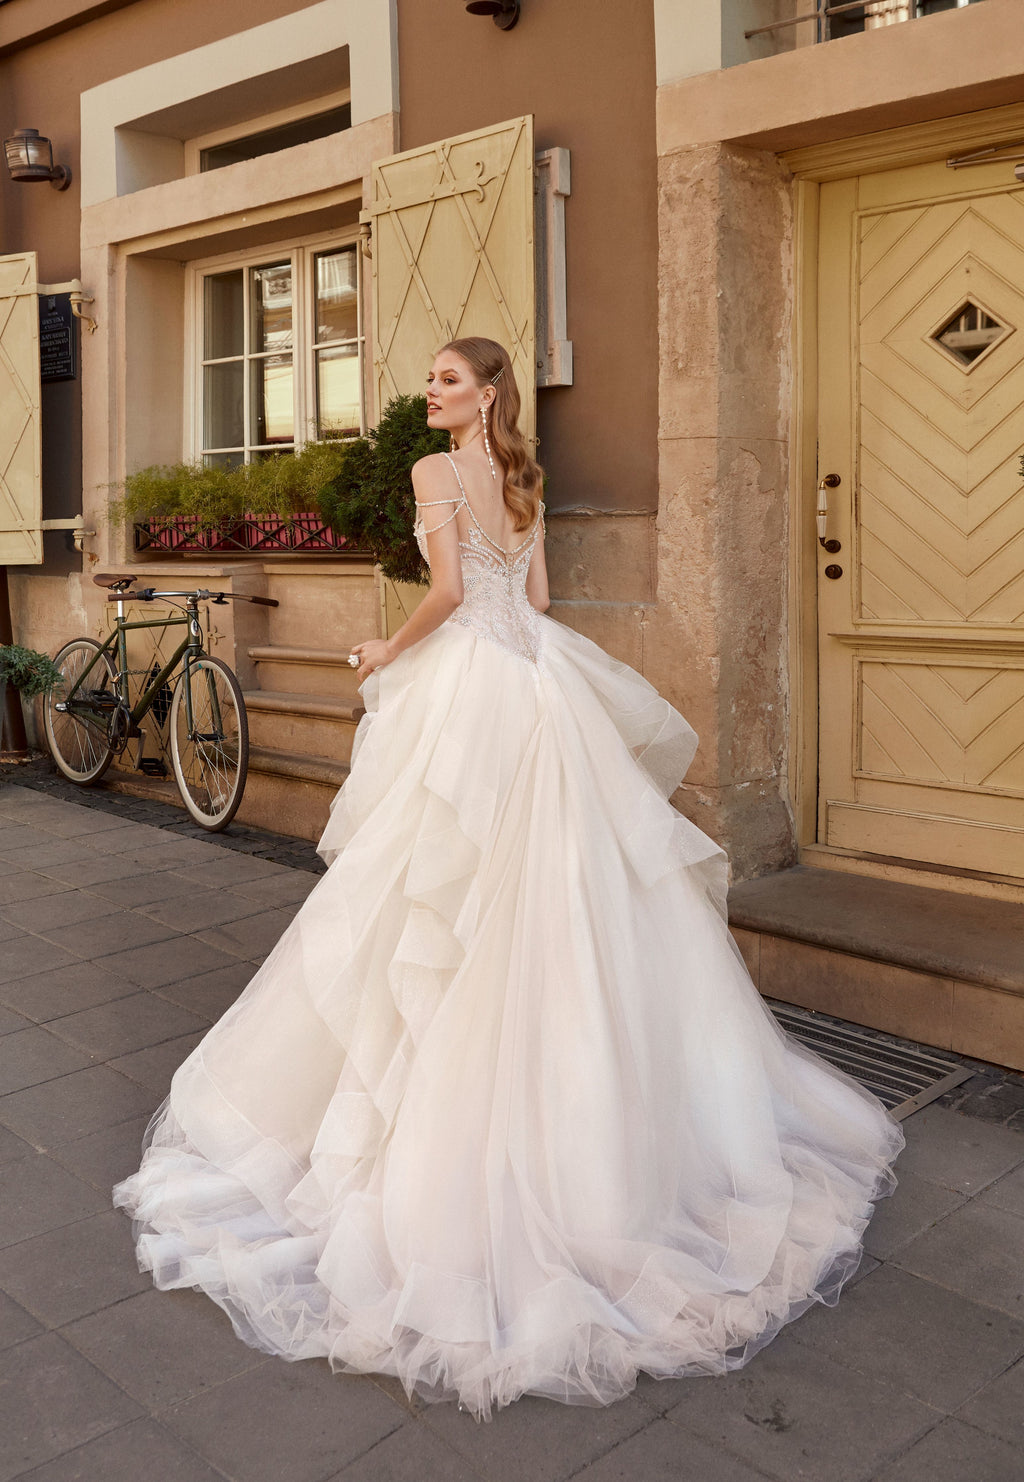 This princess ball gown has a bodice embroidered with pearls, beads and crystals, with strands of pearls and crystals falling over the shoulders and neckline. Its skirt features tulle frills with sparkling edges.